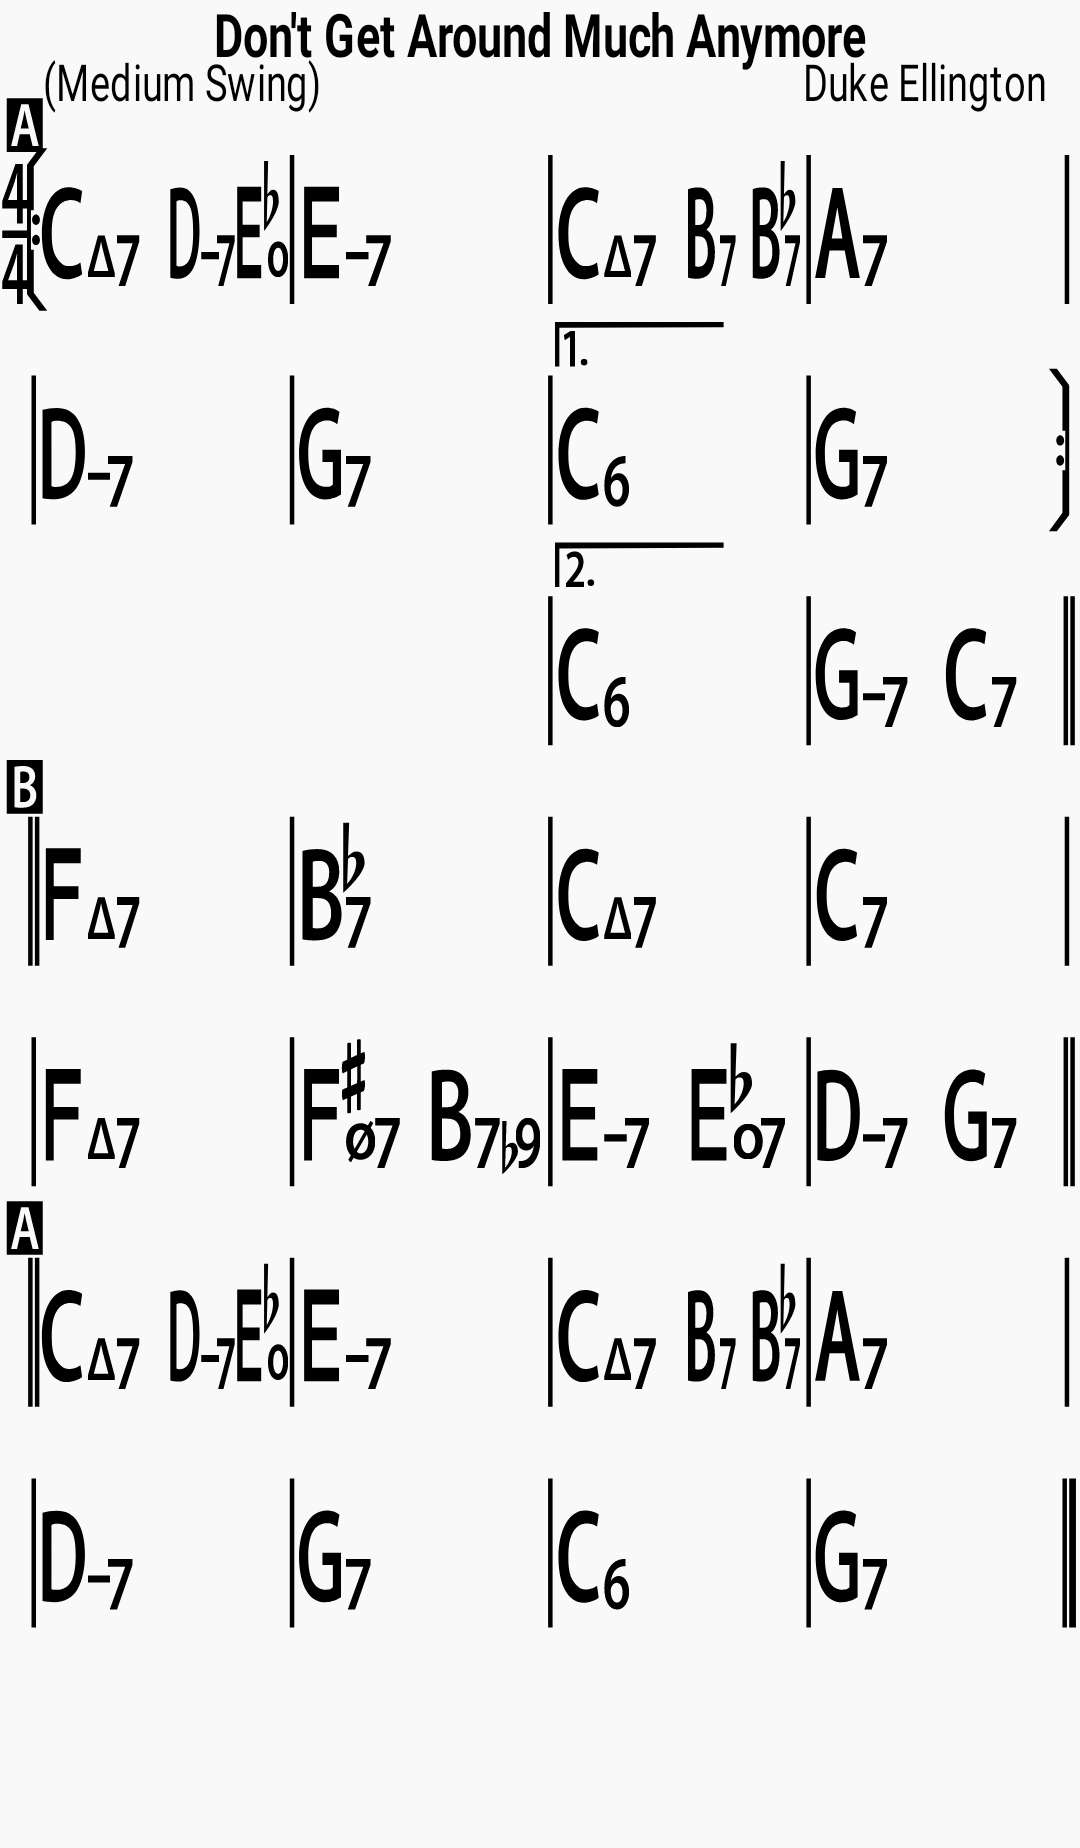 Chord chart for the jazz standard Don't Get Around Much Anymore